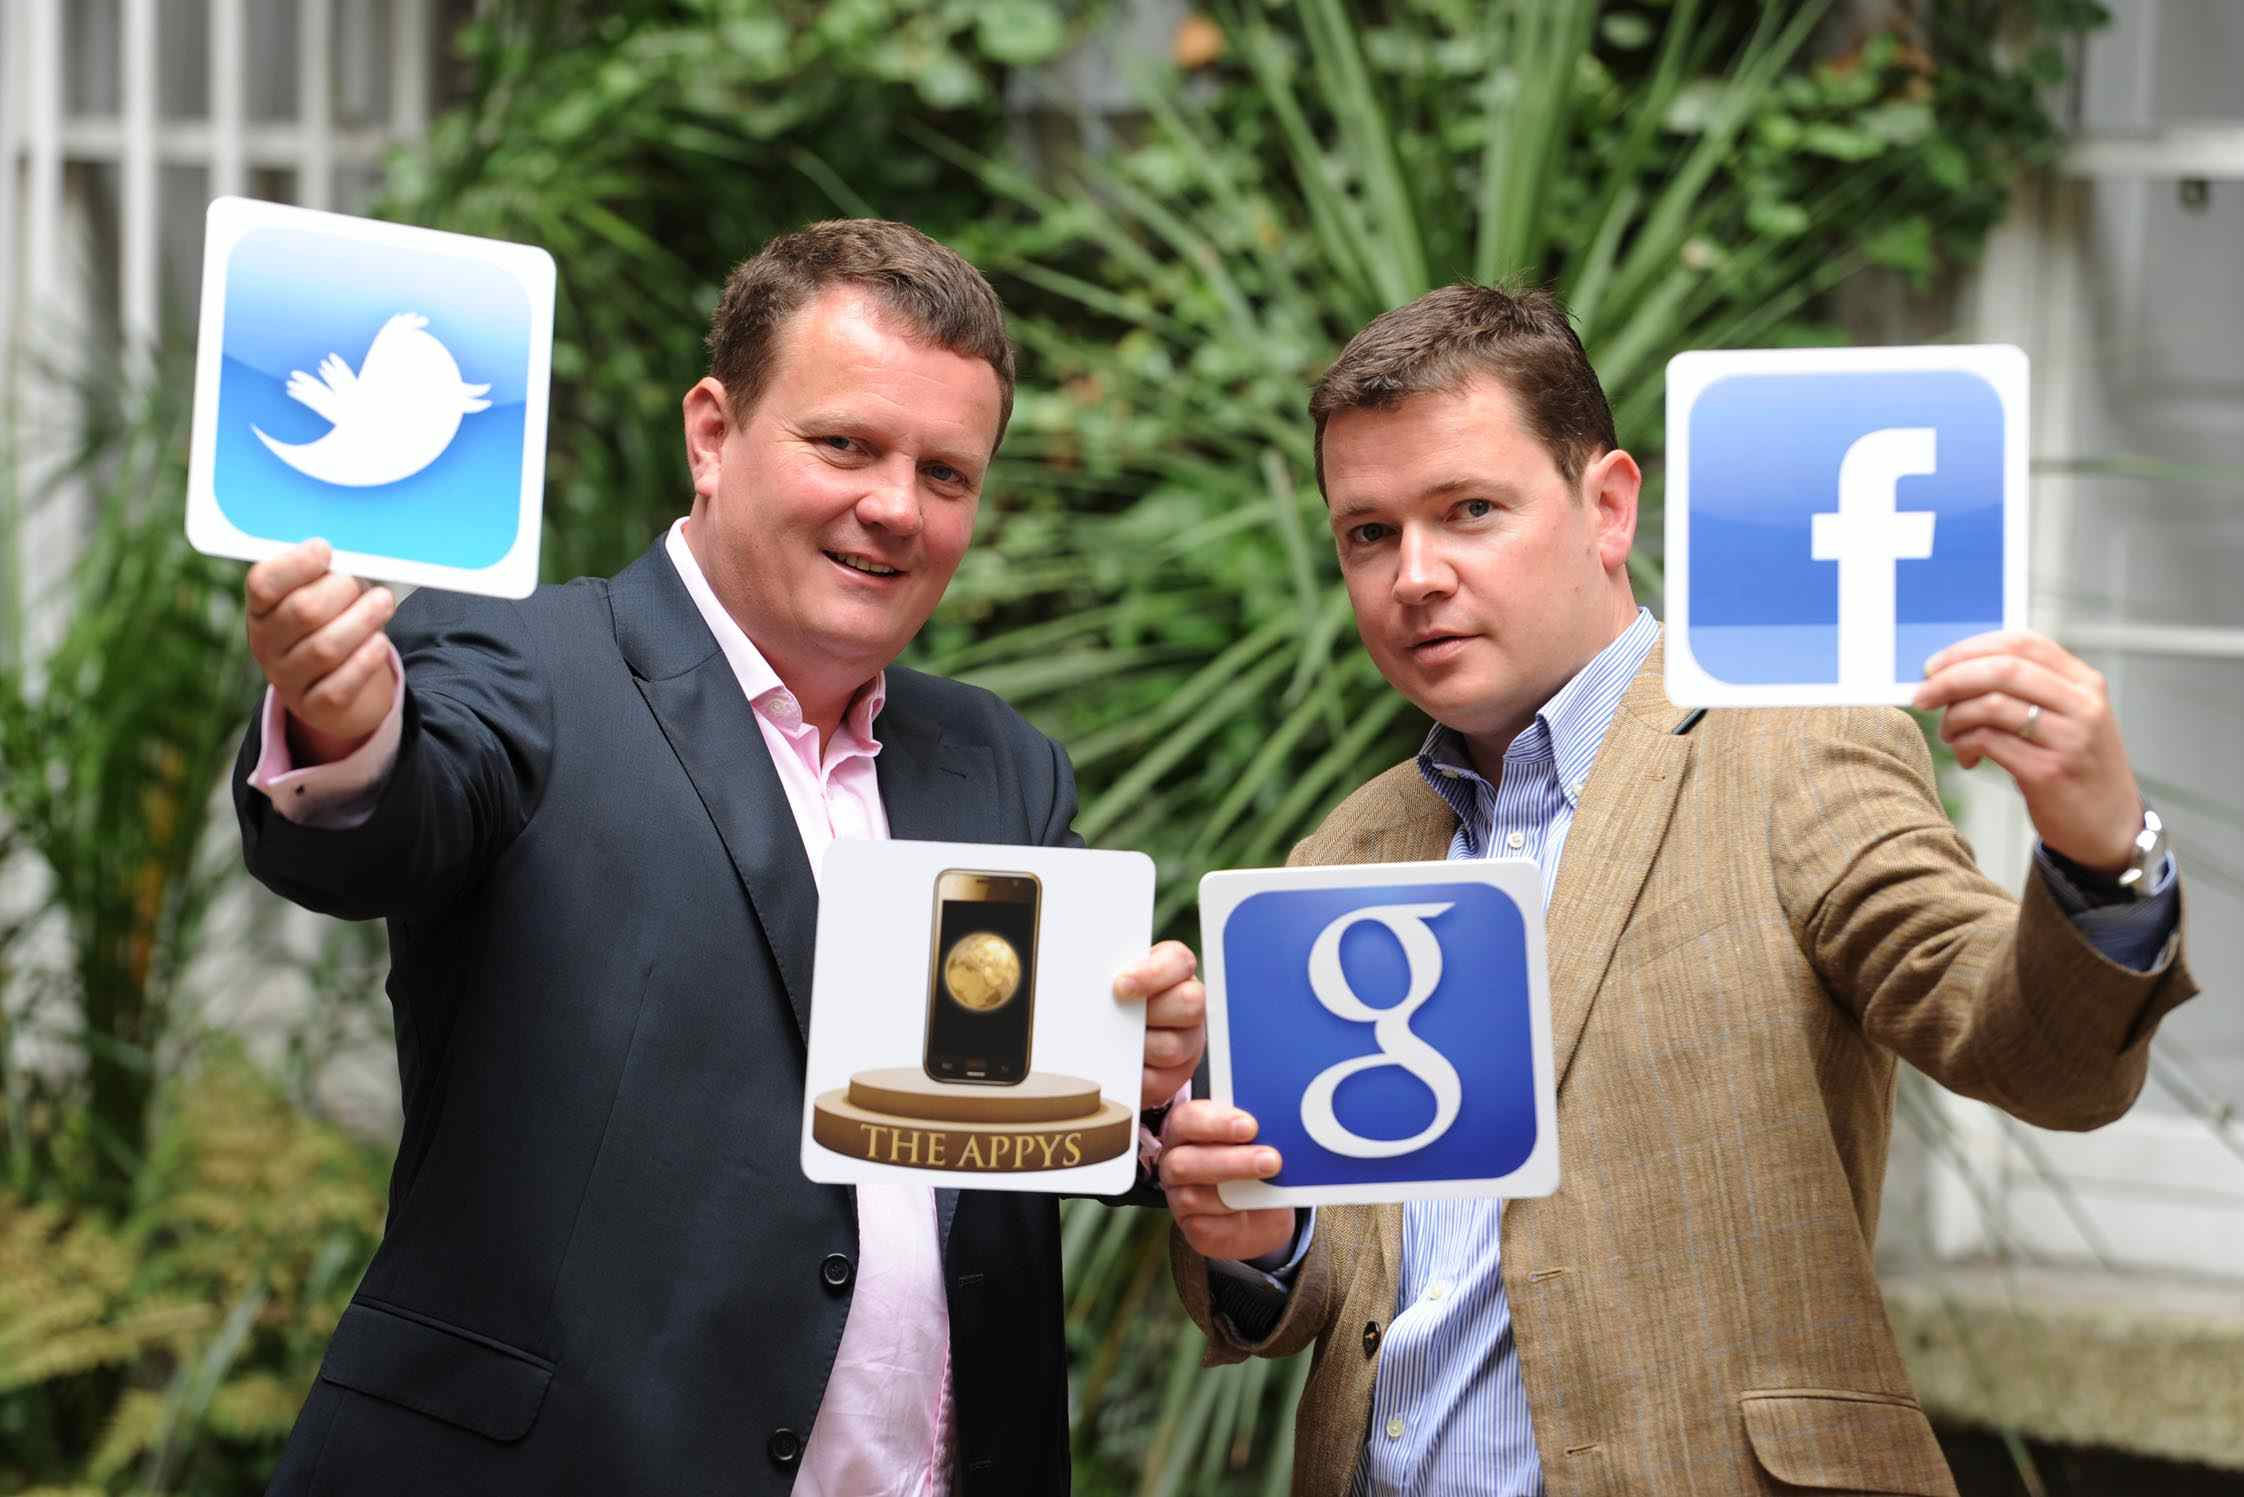 Stephen Mackarel, CEO of the Carphone Warehouse, and Stephen Conmy, Editor of Digital Times